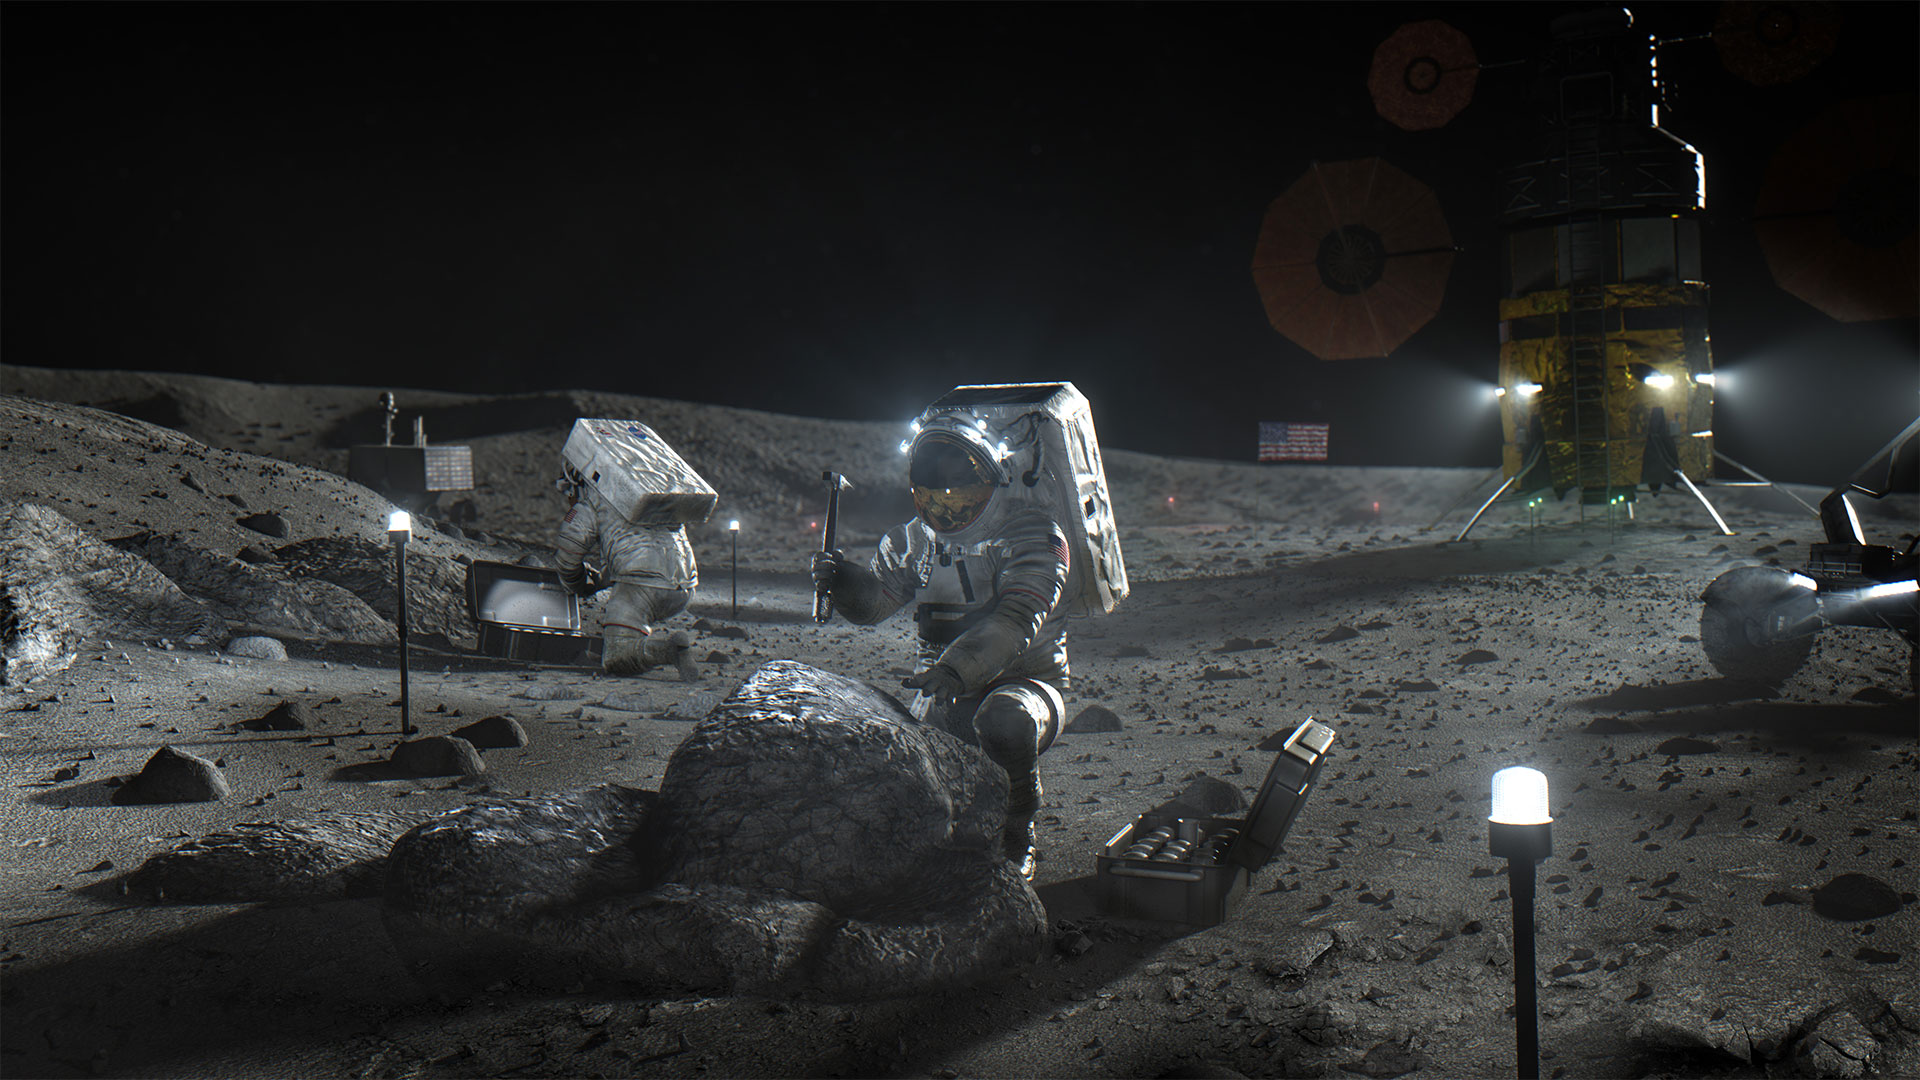 Biden White House Backs NASA's Project Artemis Human Moon Landing Goal